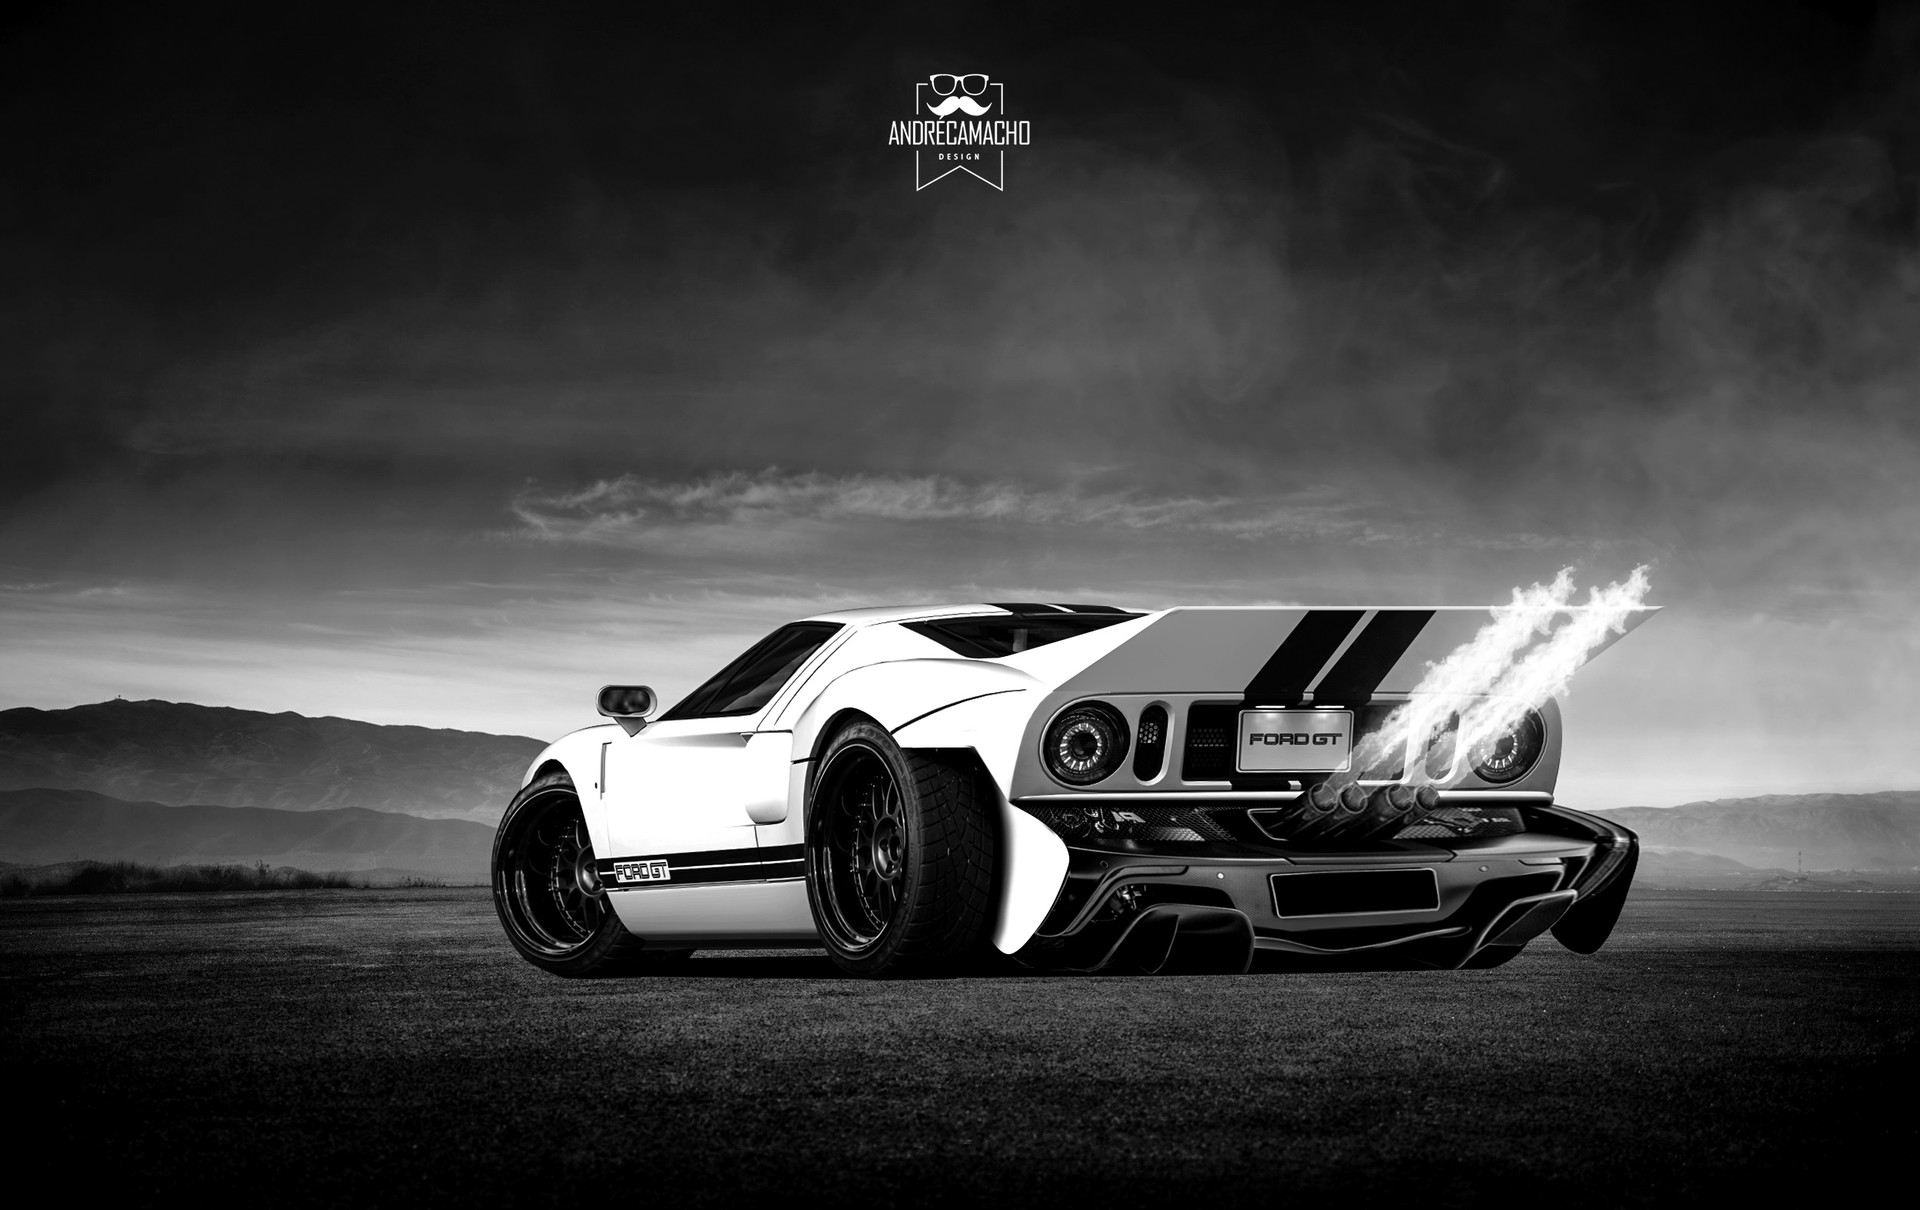 Andre camacho design ford gt 1